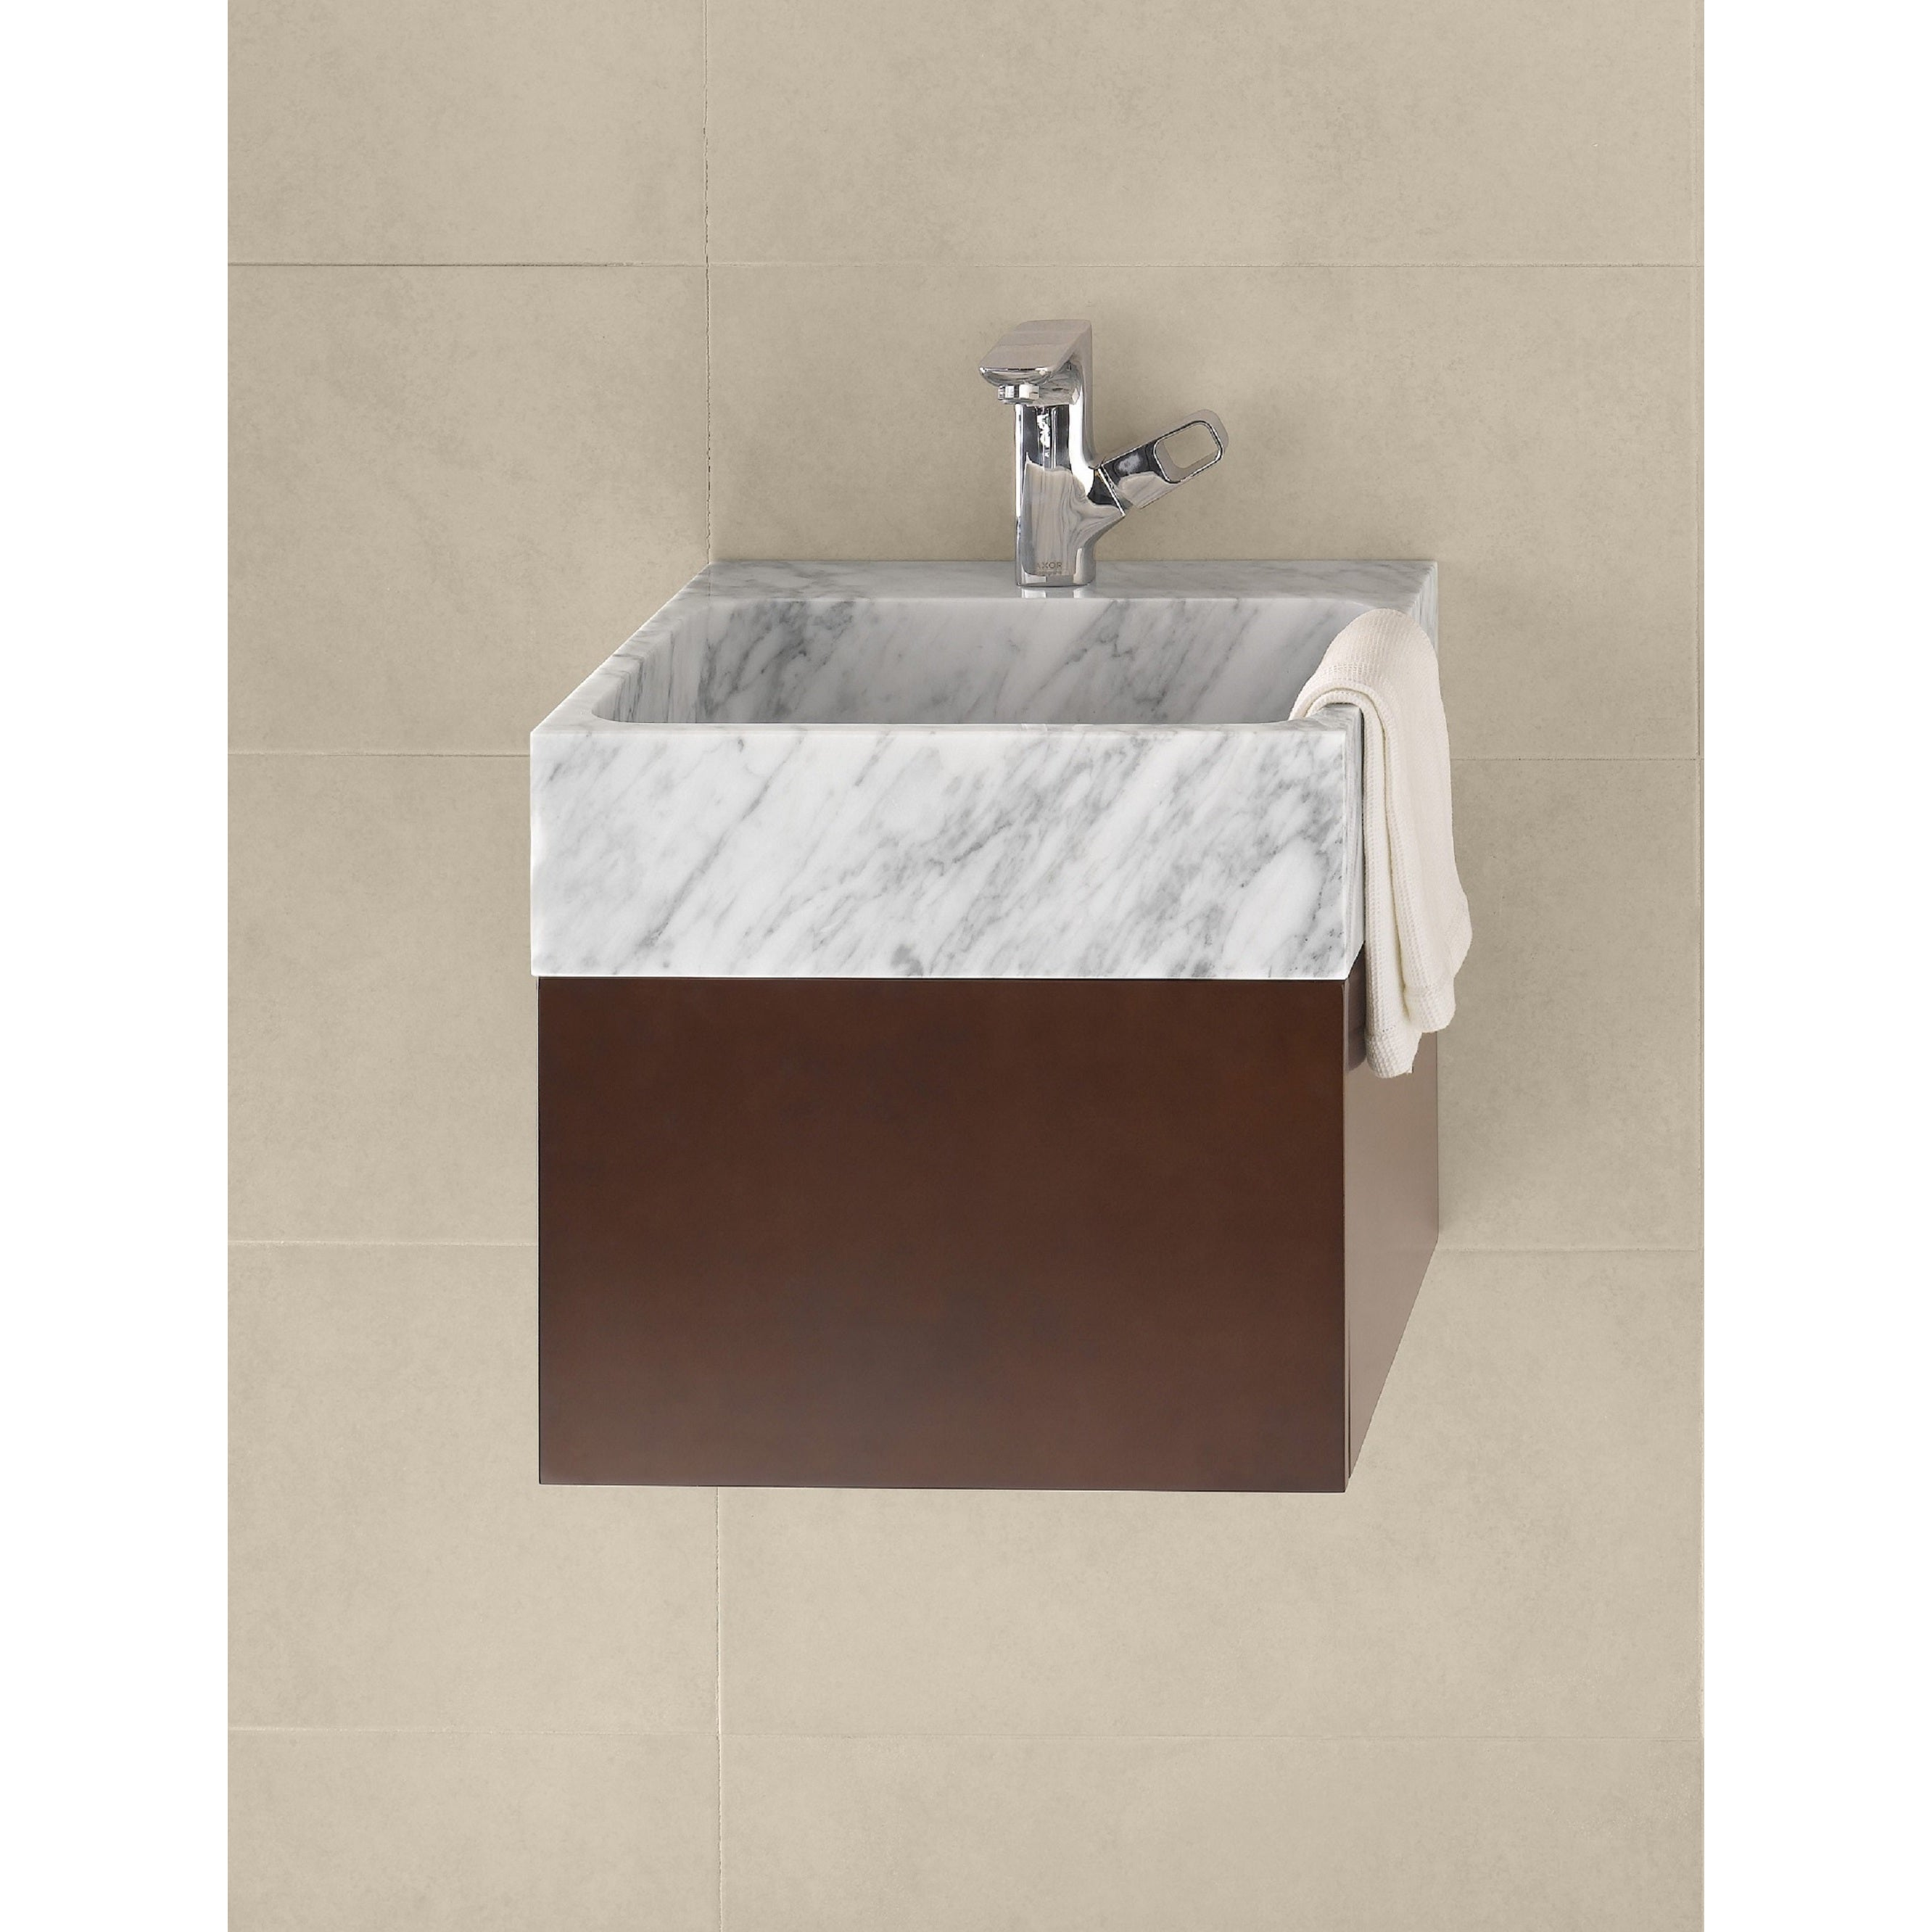 countertops bathroom topj decorating set backsplash of tile with design and ideas quartz vessel dsc inch ace single granite countertop alluring best vanity countertopsa beautiful sink top the